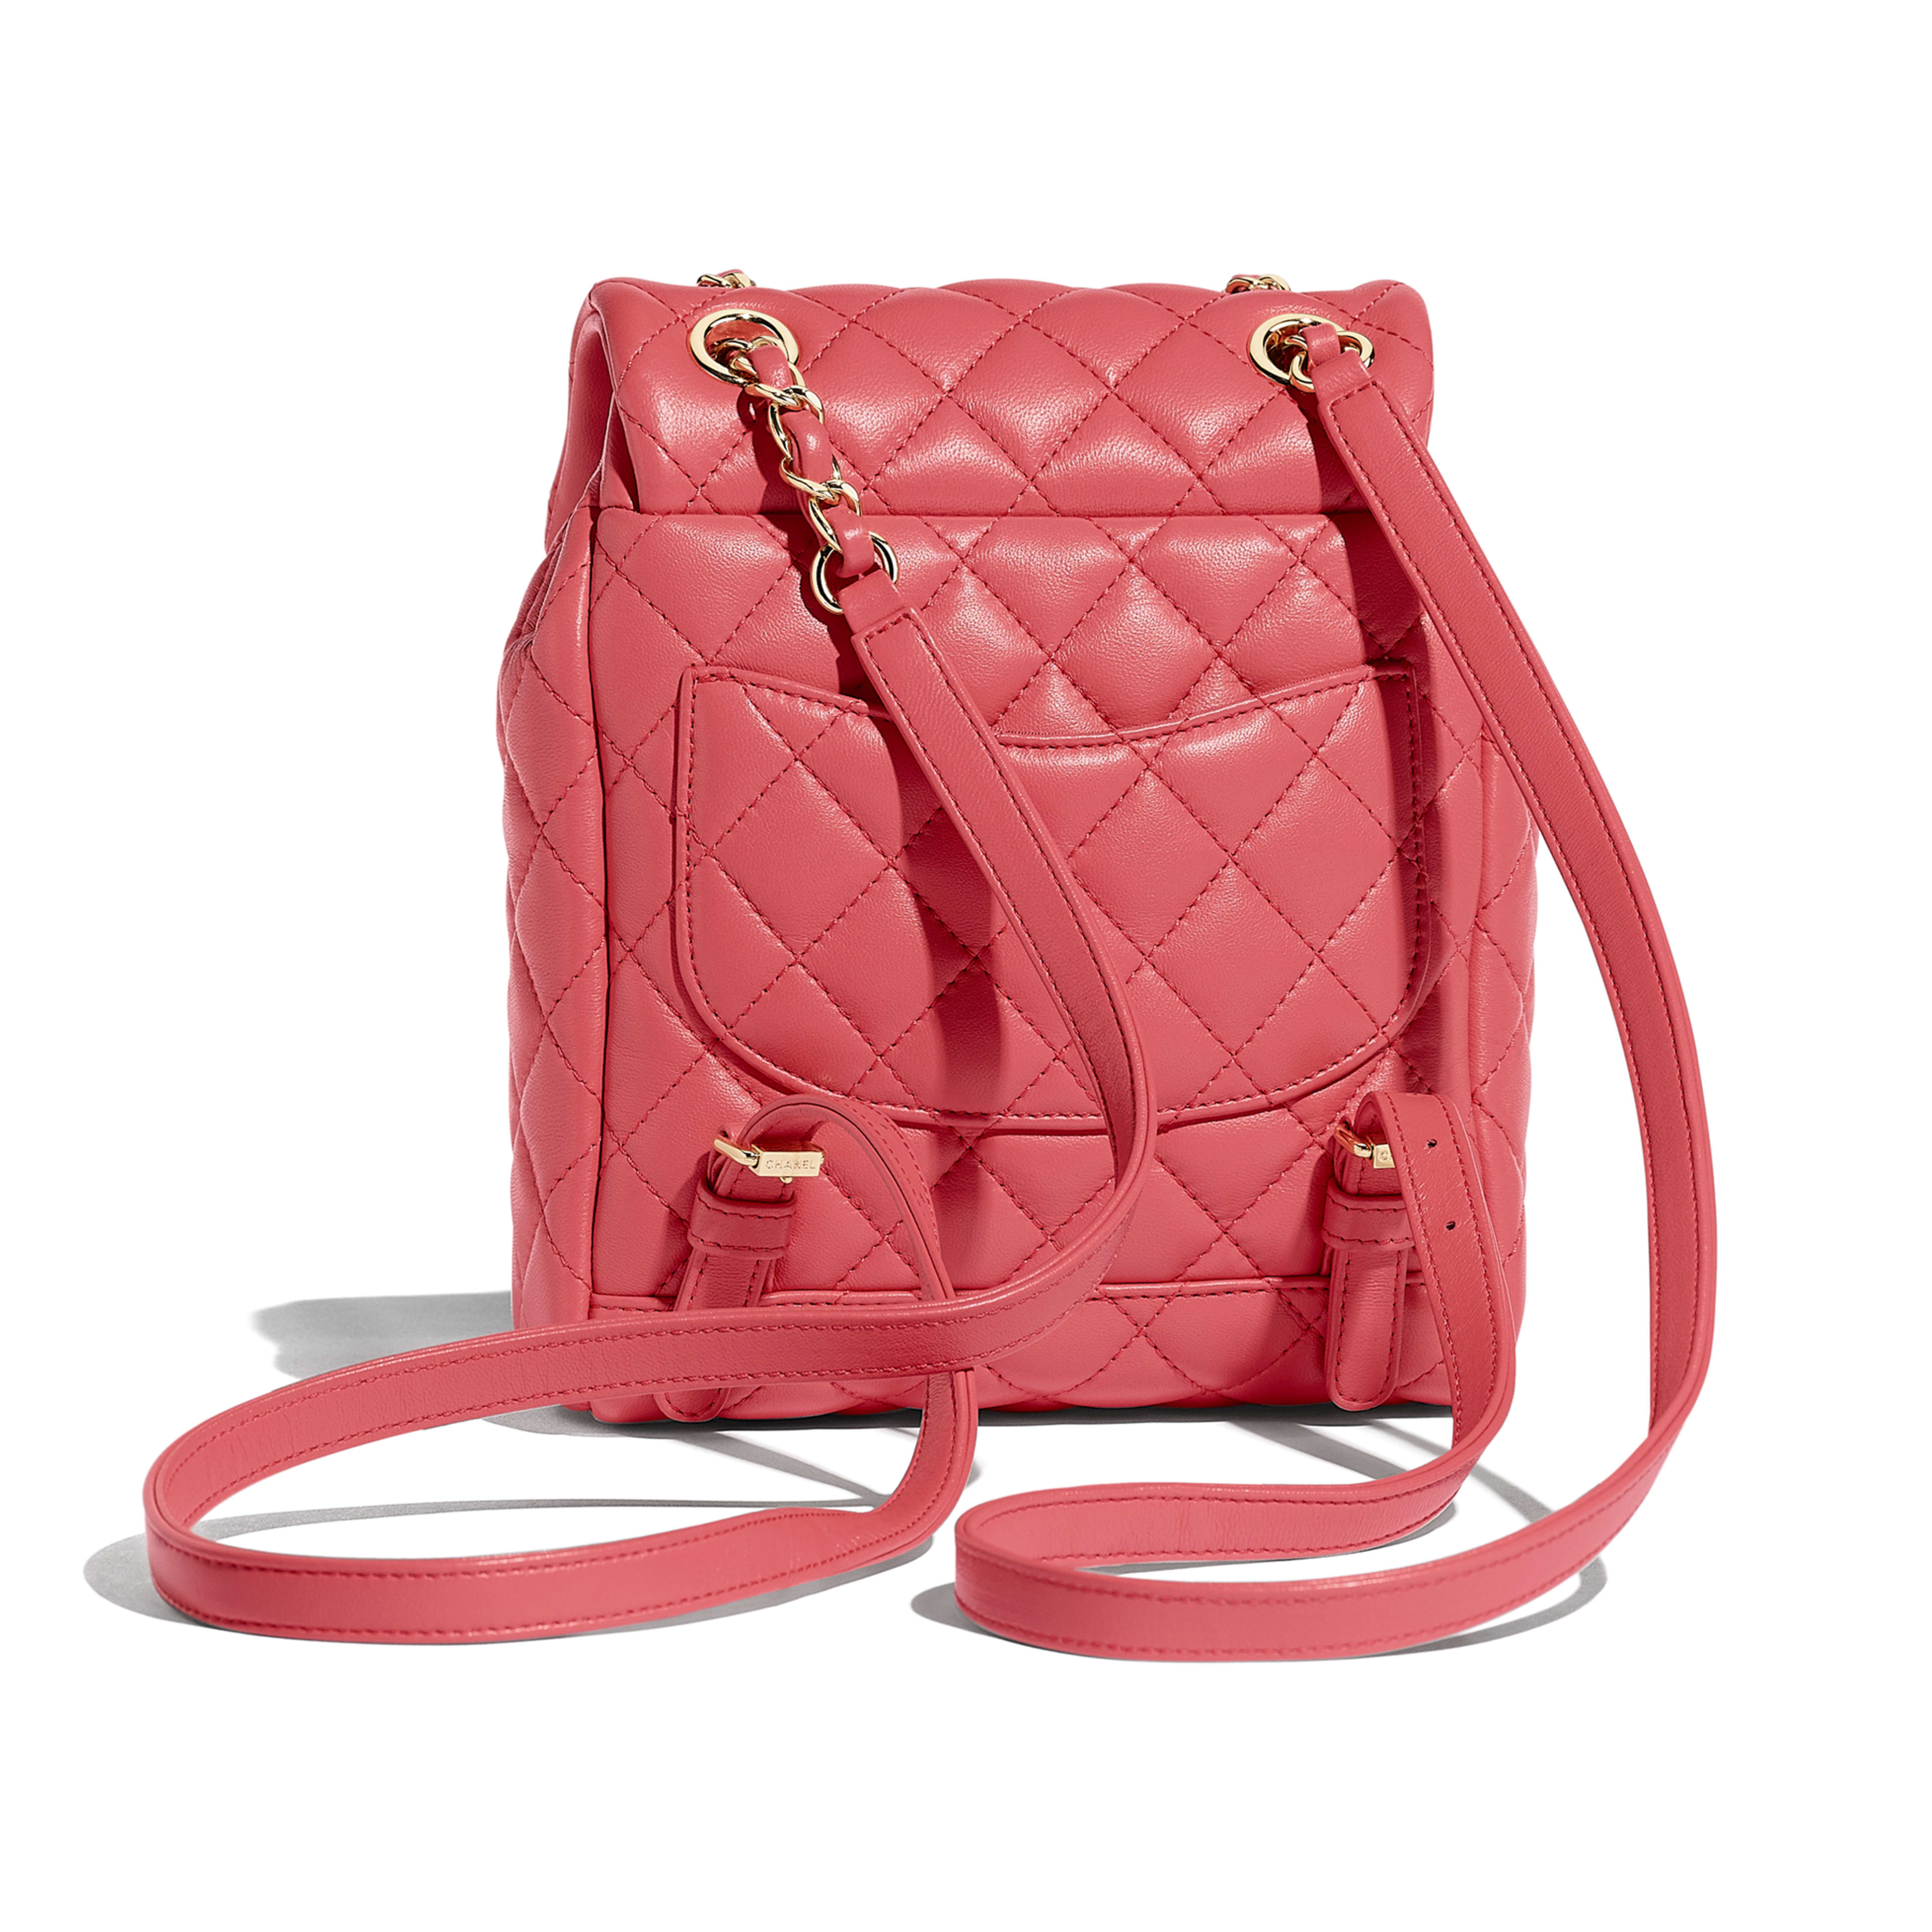 Backpack - Pink - Lambskin & Gold-Tone Metal - Alternative view - see full sized version